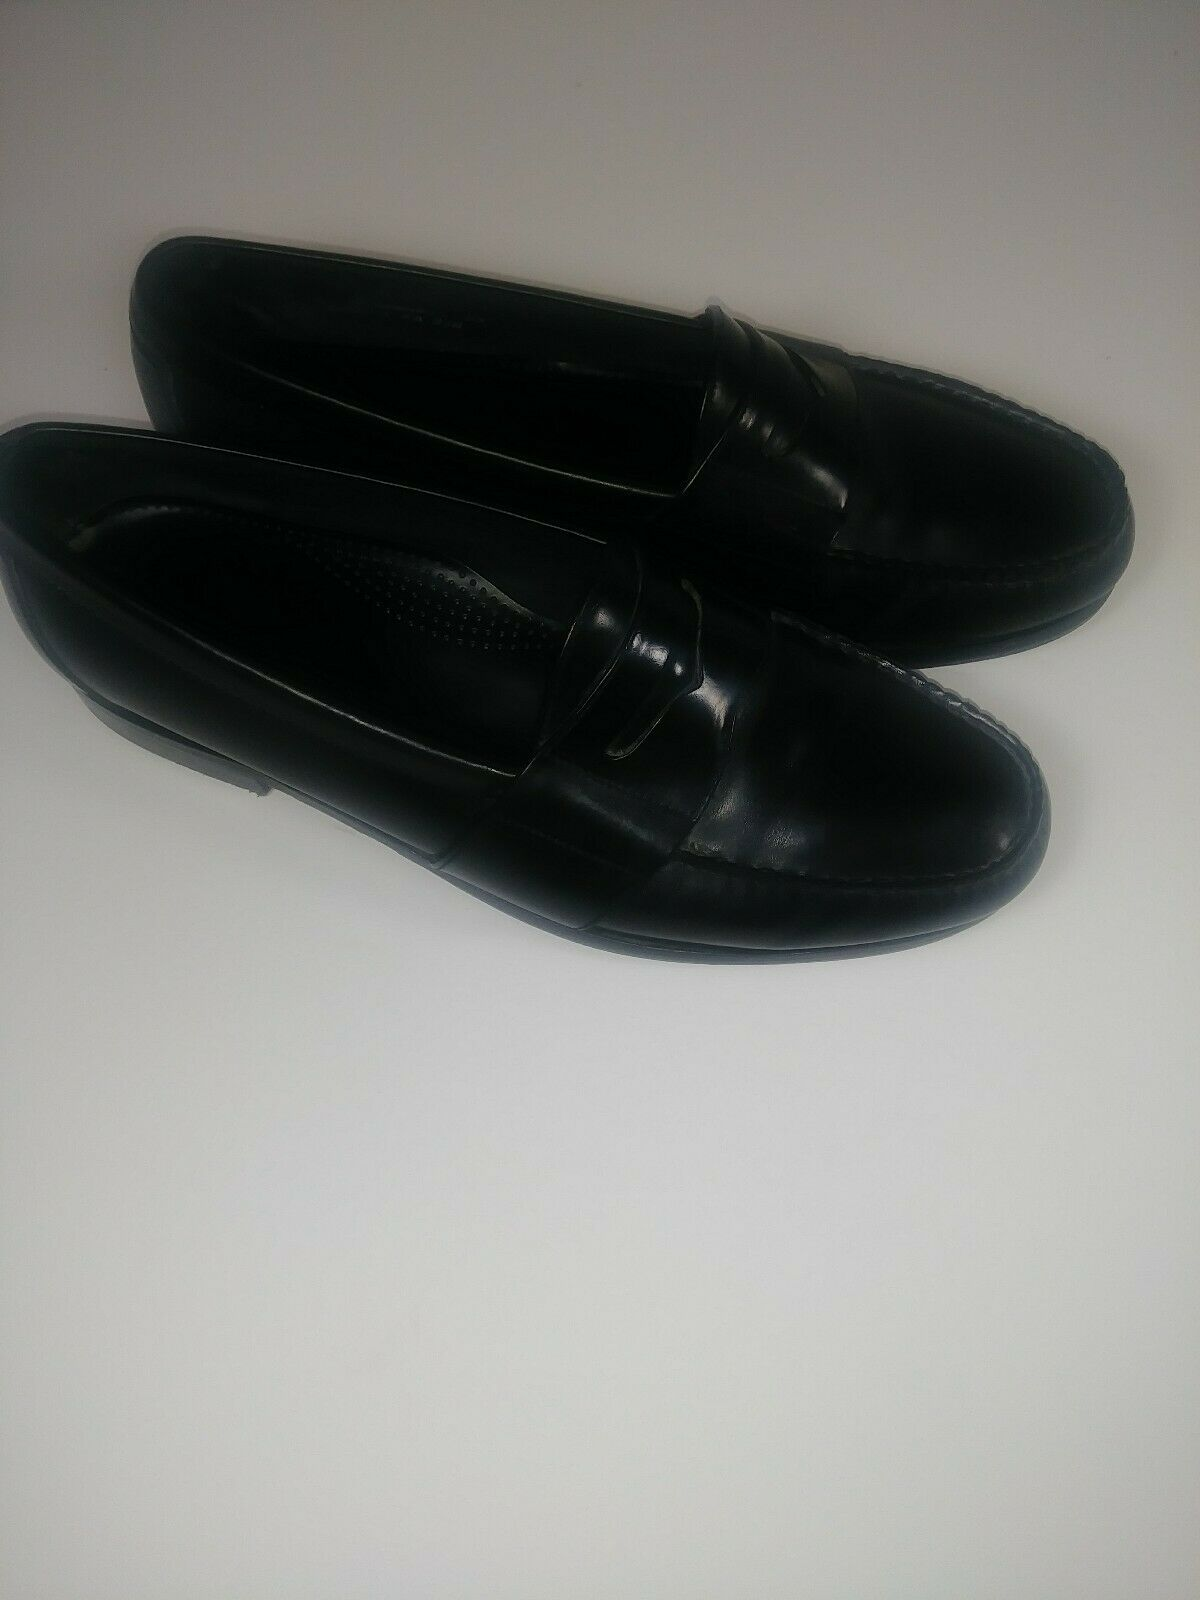 Mens Cole Haan Pinch Penny Dress Shoes Loafers Size 12 MSRP $200 image 2